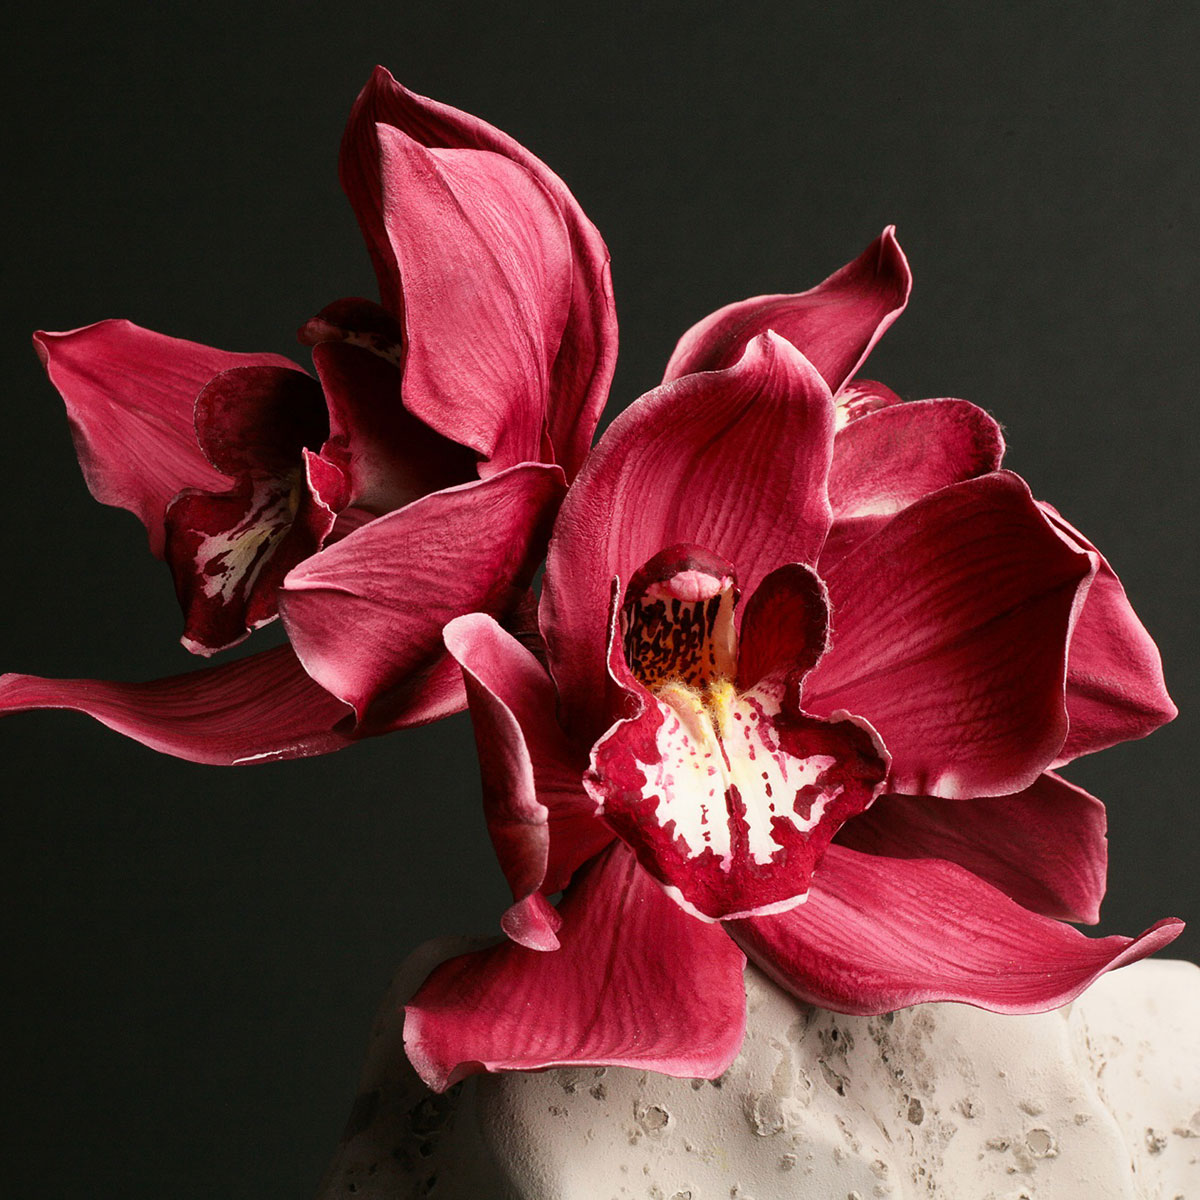 Six Reasons Why Orchids Are Cool